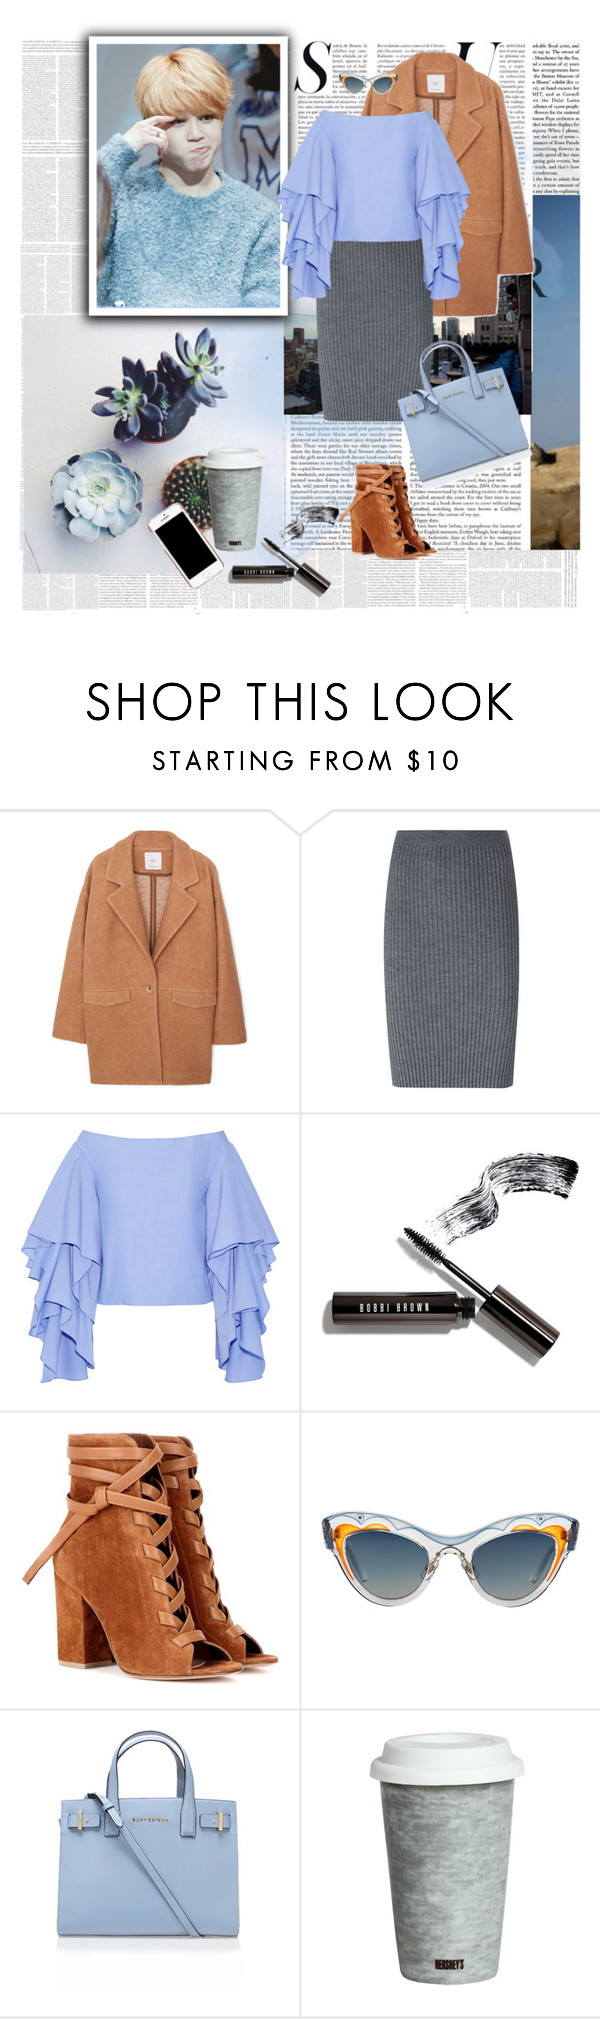 """offshoulder(Jimin <3 )"" by ani-onni ❤ liked on Polyvore featuring No Tomorrow, MANGO, Jacquemus, Rosie Assoulin, Bobbi Brown Cosmetics, Gianvito Rossi, Miu Miu, Kurt Geiger, Fitz and Floyd and Moschino"